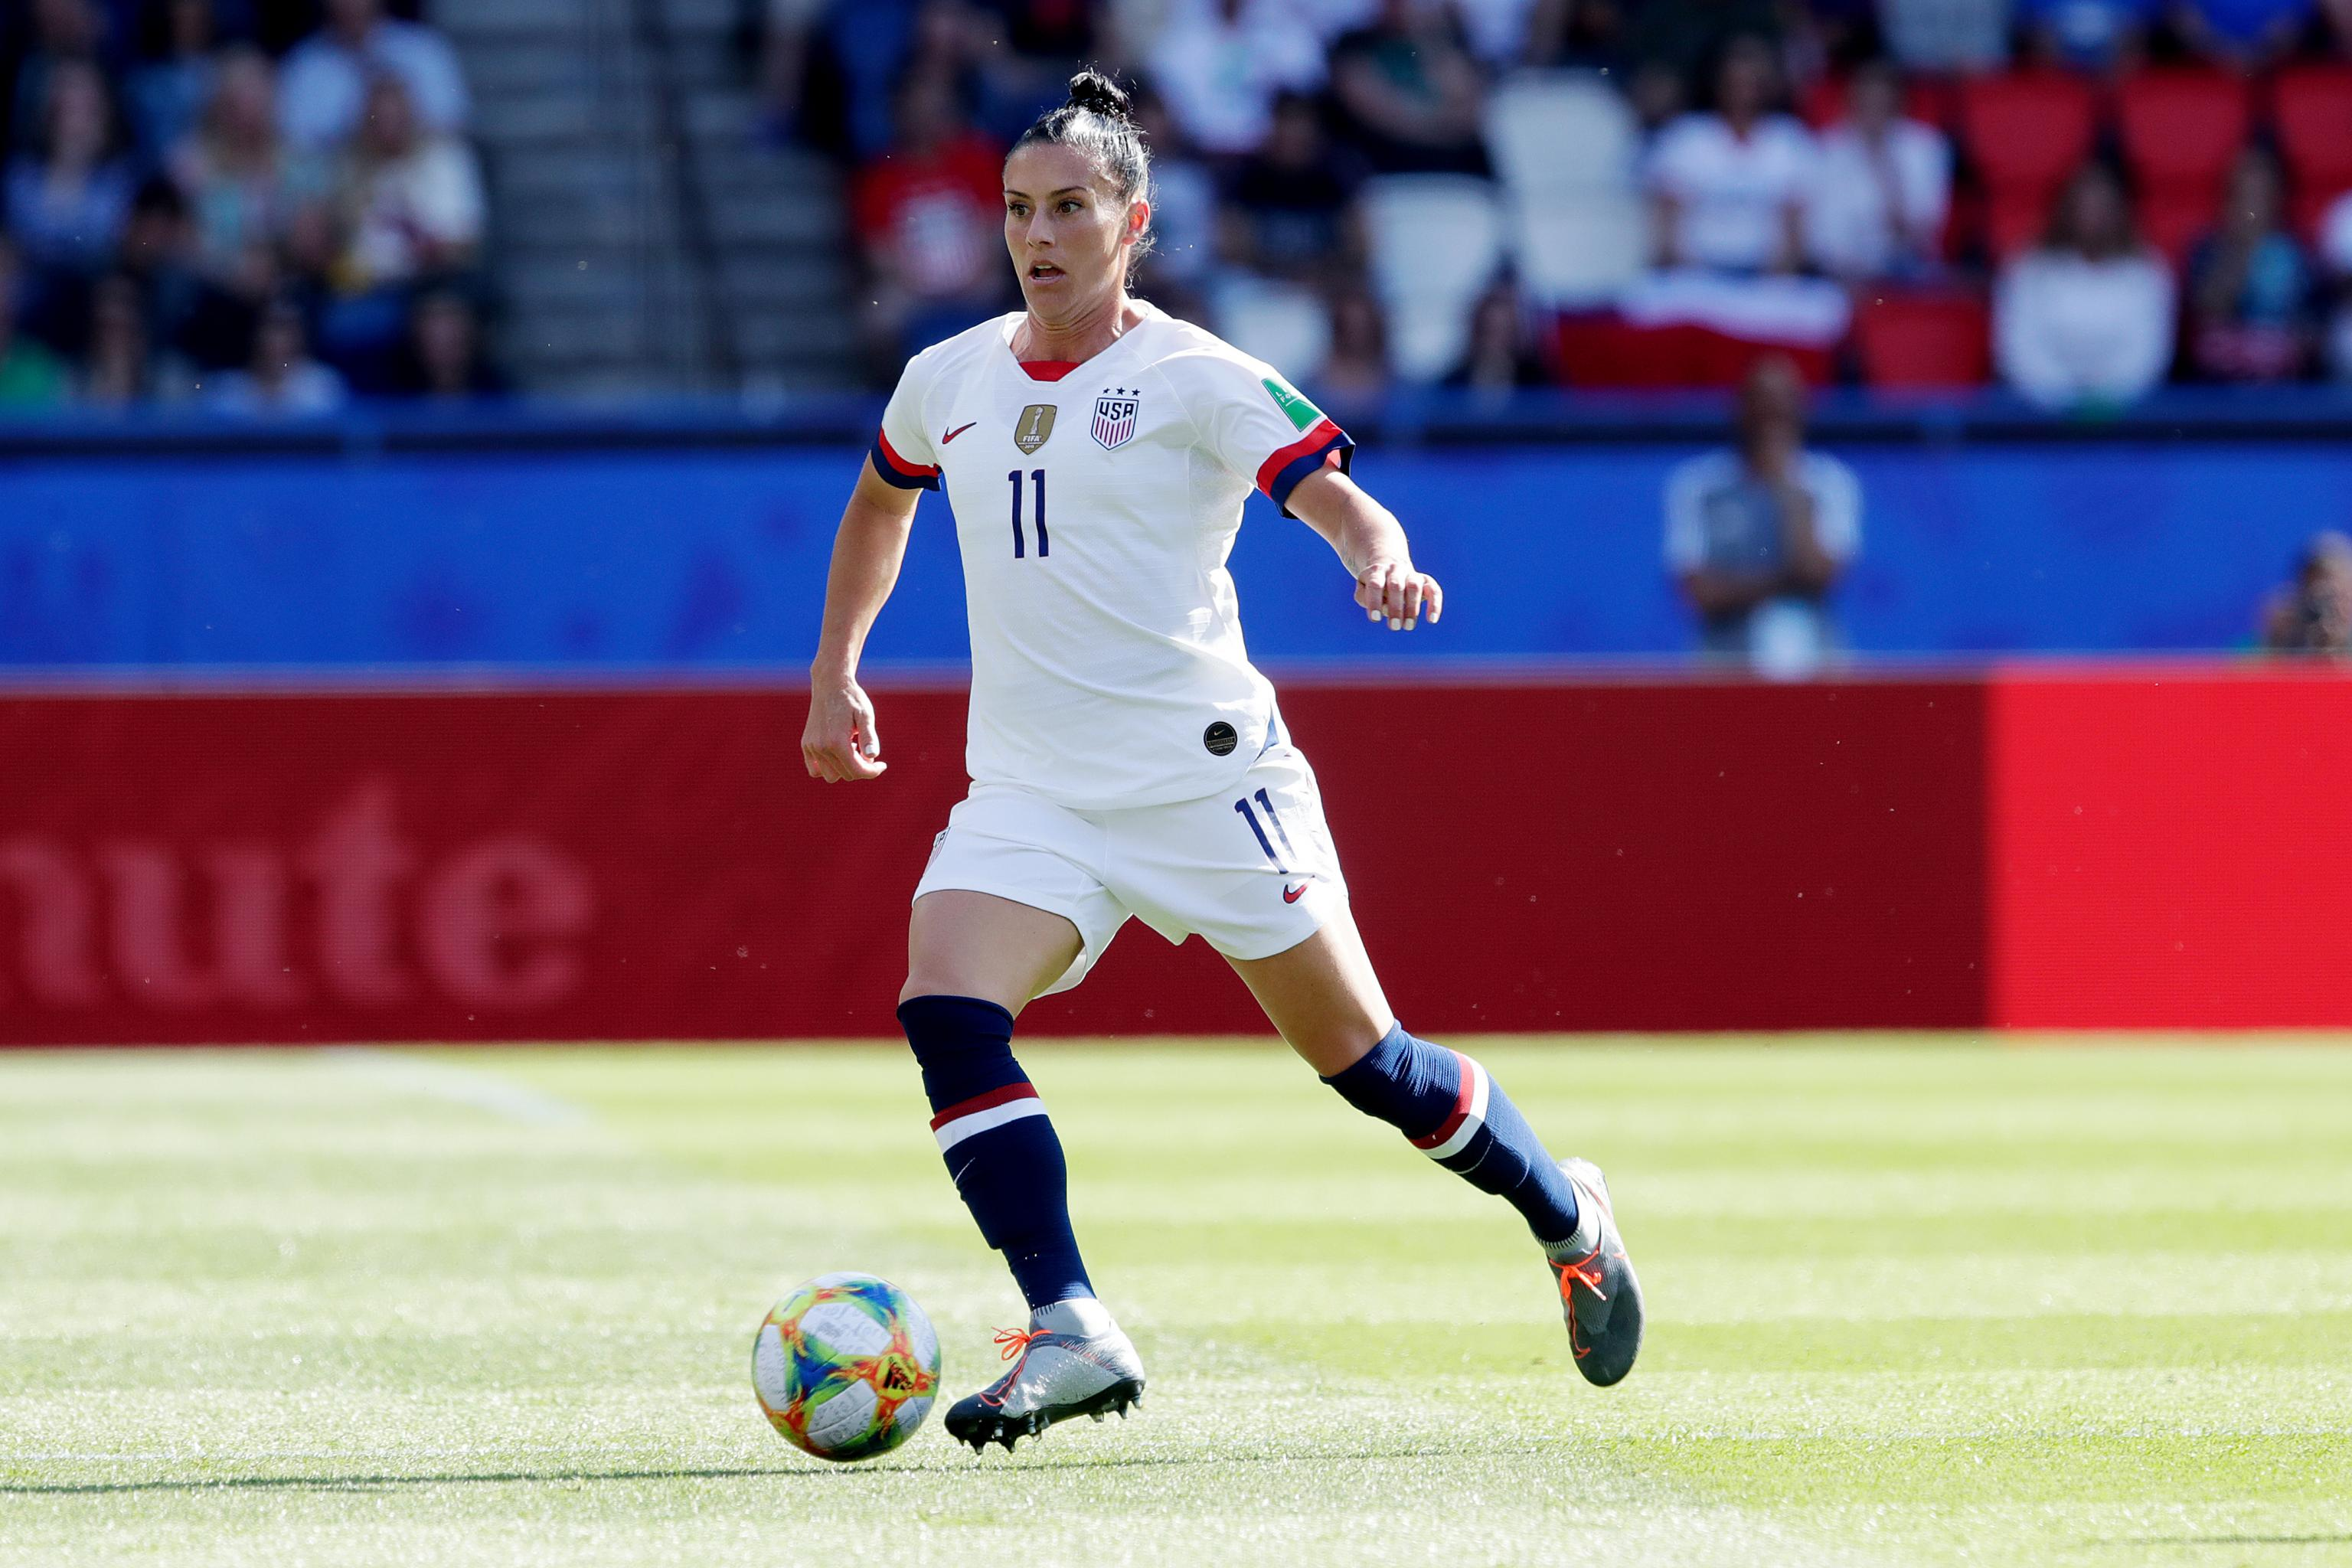 USWNT's Ali Krieger: Trump Is Angered by Women He 'Cannot